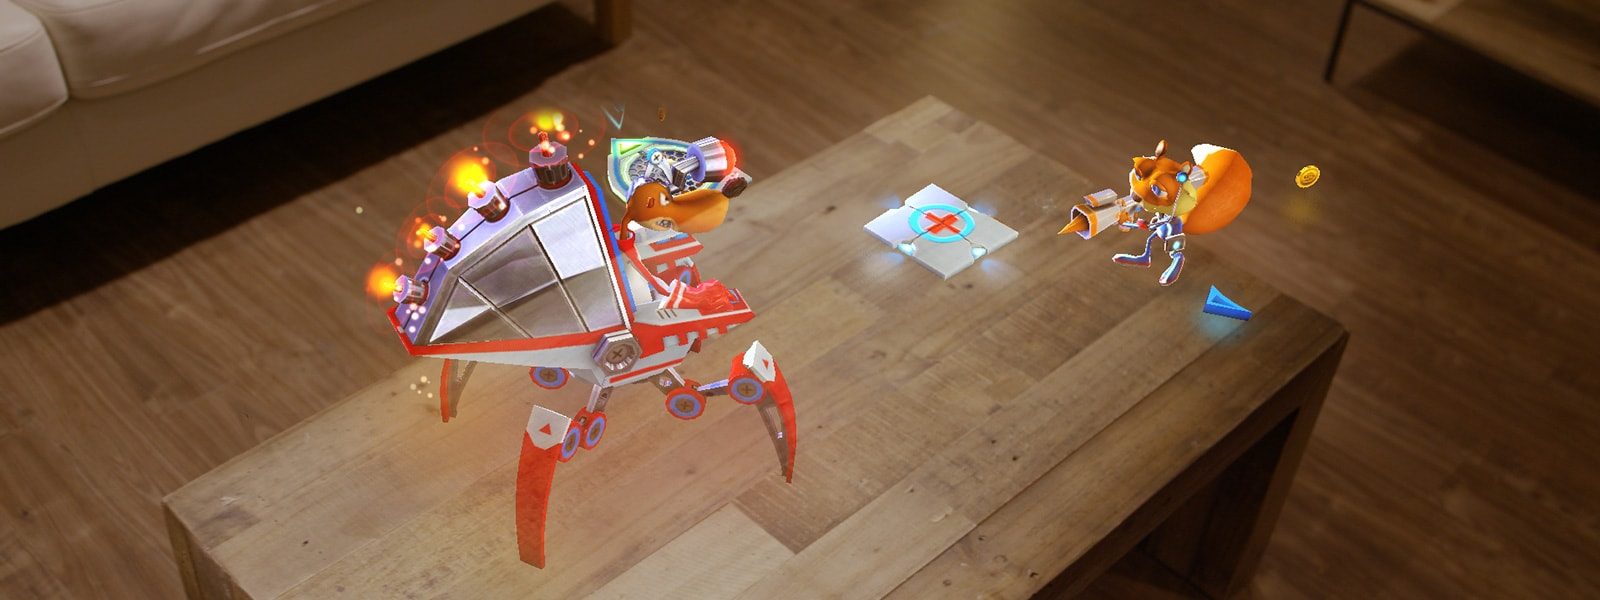 Holographic squirrel stands on a sofa table and points a gun at a holographic robotic walker vehicle which is being operated by another holographic animal character